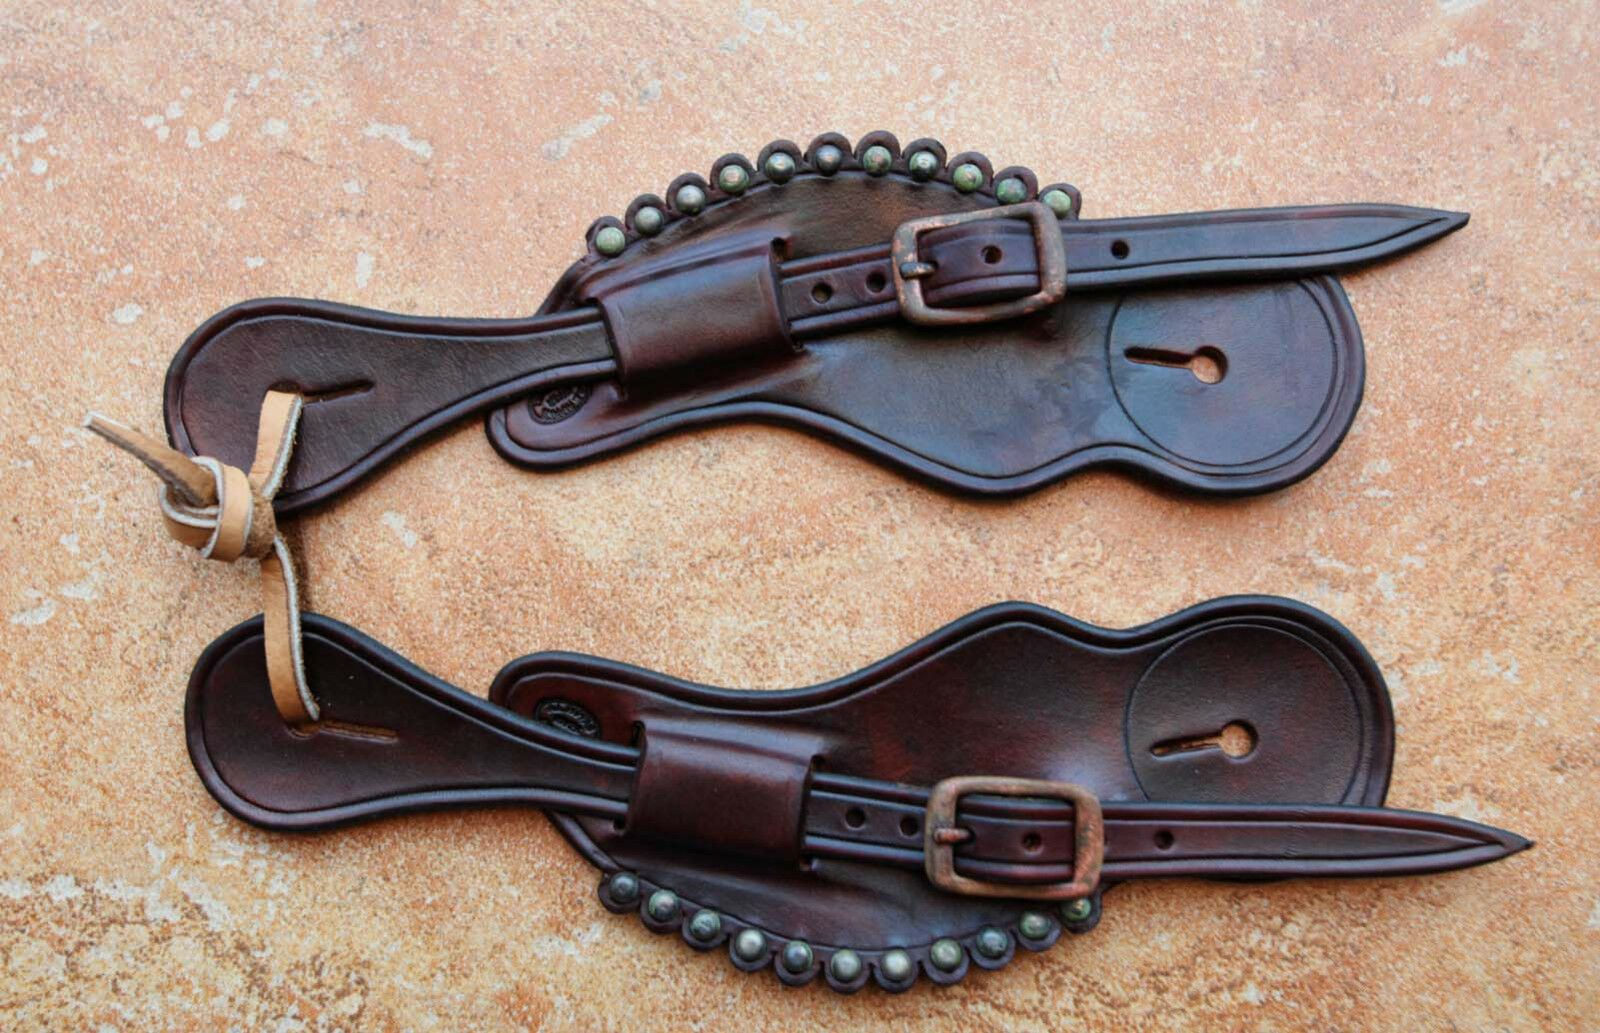 LADIES Handmade AUTHENTIC OLD WEST STYE Cowgirl  Handmade LADIES  SPUR STRAPS By Pappas bb882f